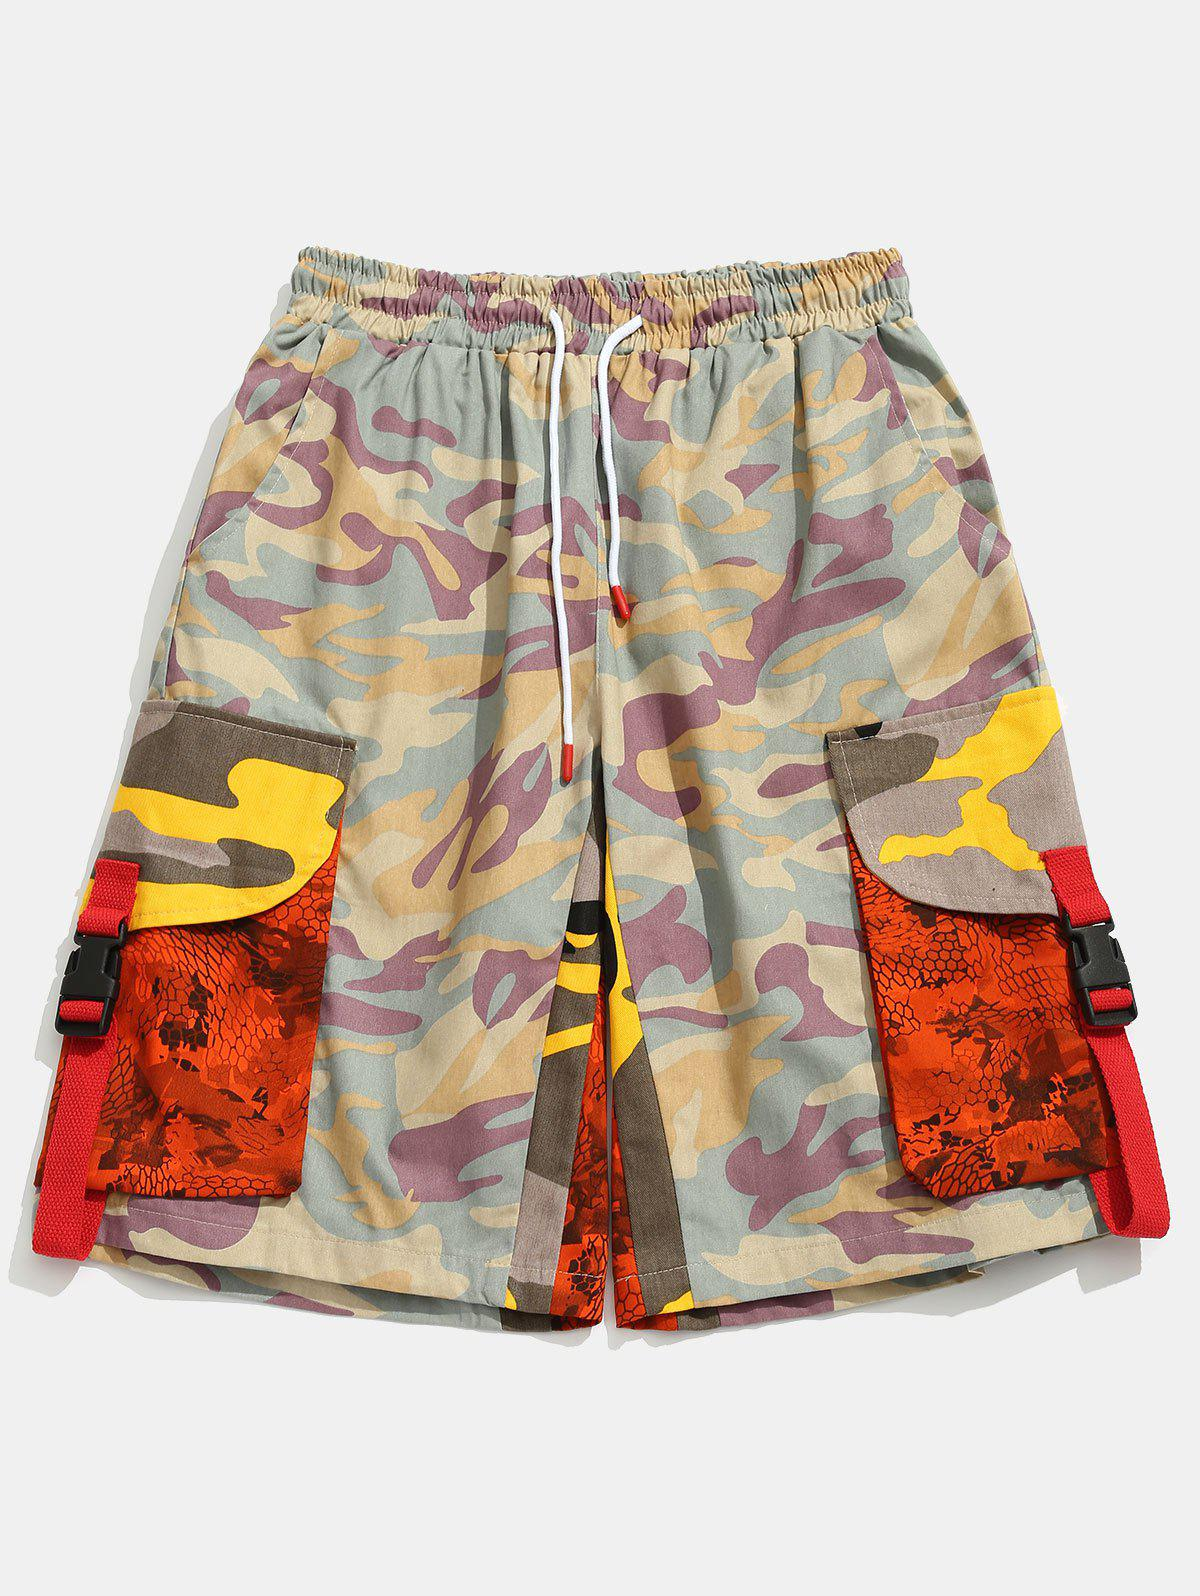 Store Contrast Camouflage Patch Pockets Cargo Shorts